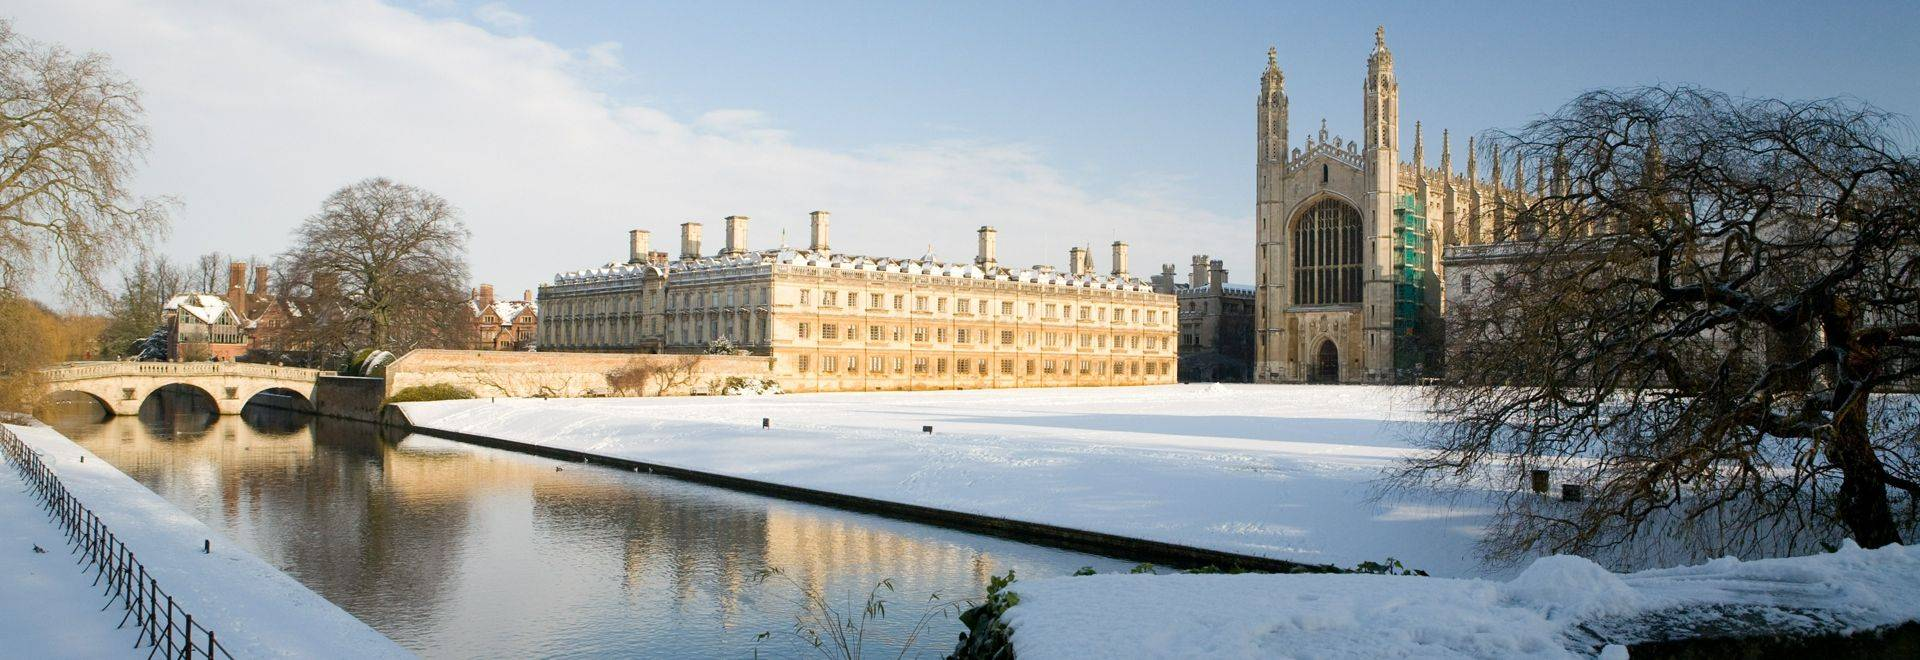 Winter scene across the backs to Kings college chapel and Clare College bridge. Christmas at Kings College